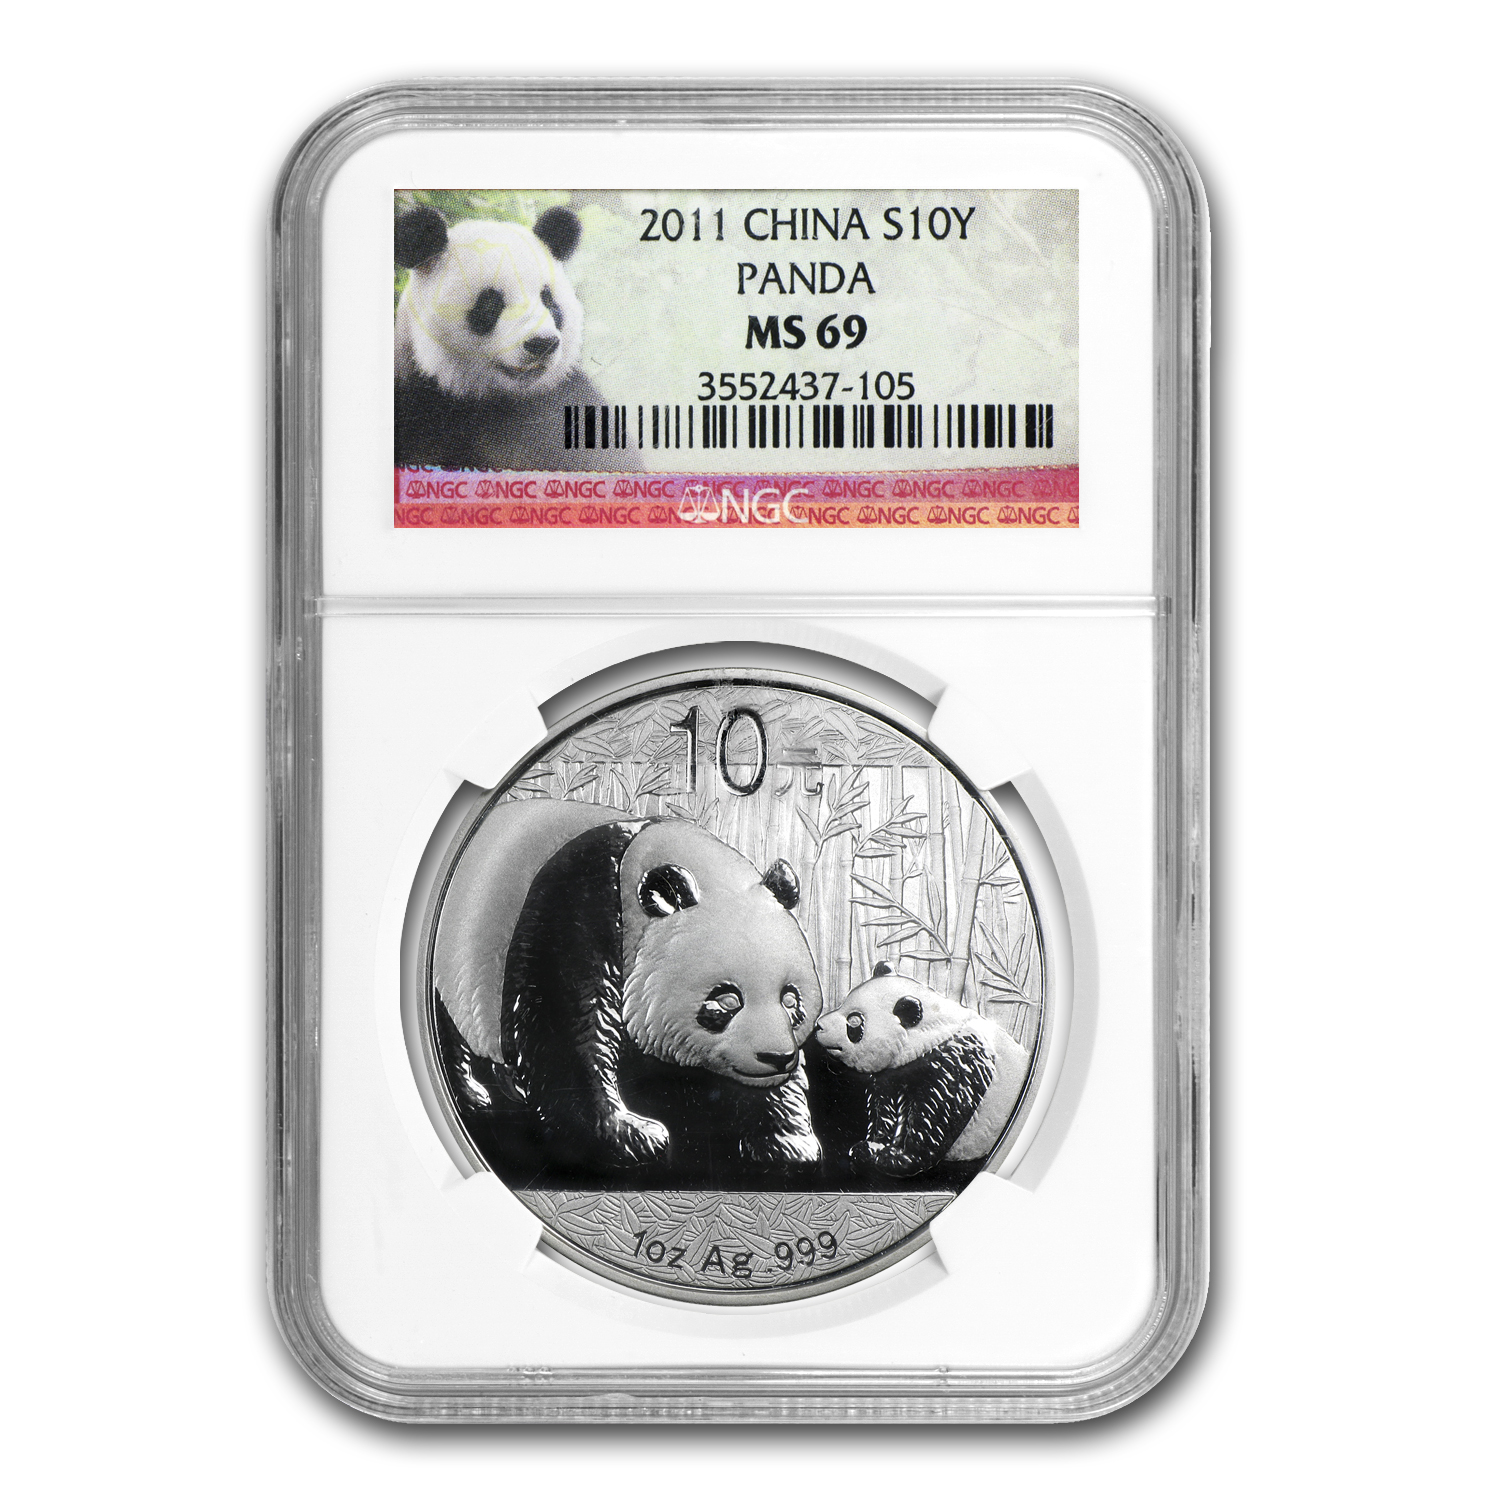 2011 1 oz Silver Chinese Panda MS-69 NGC